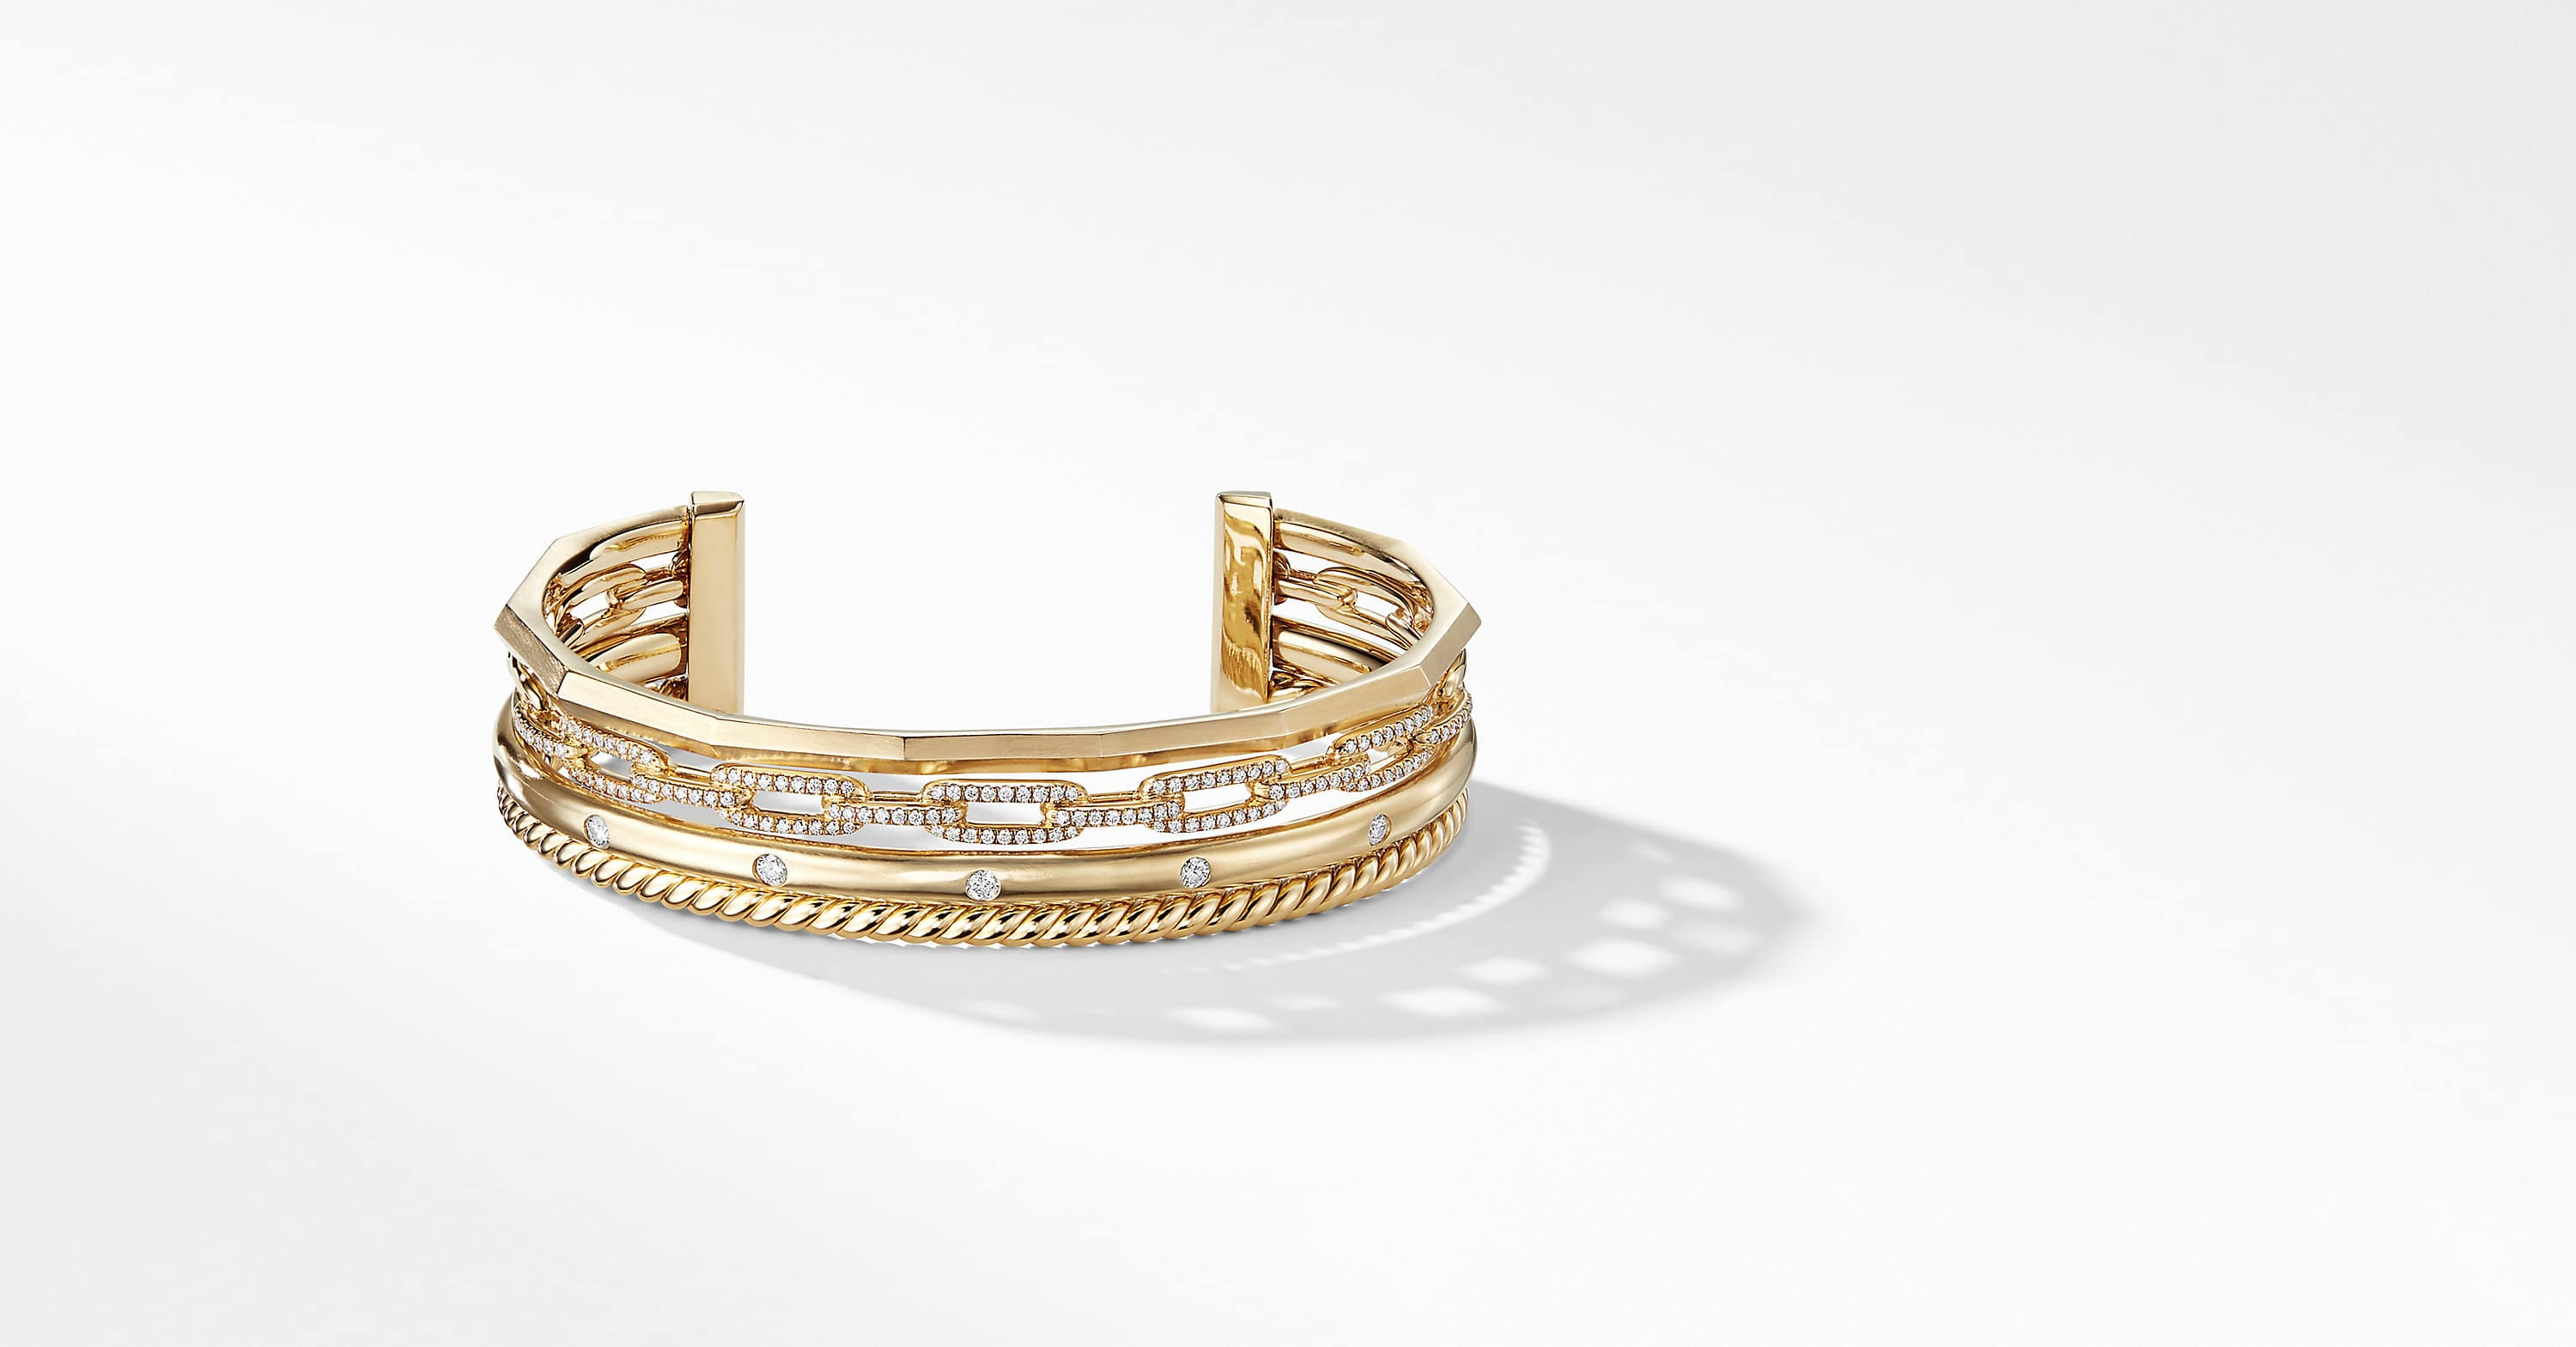 Stax Medium Cuff Bracelet with Diamonds in 18K Gold, 14mm